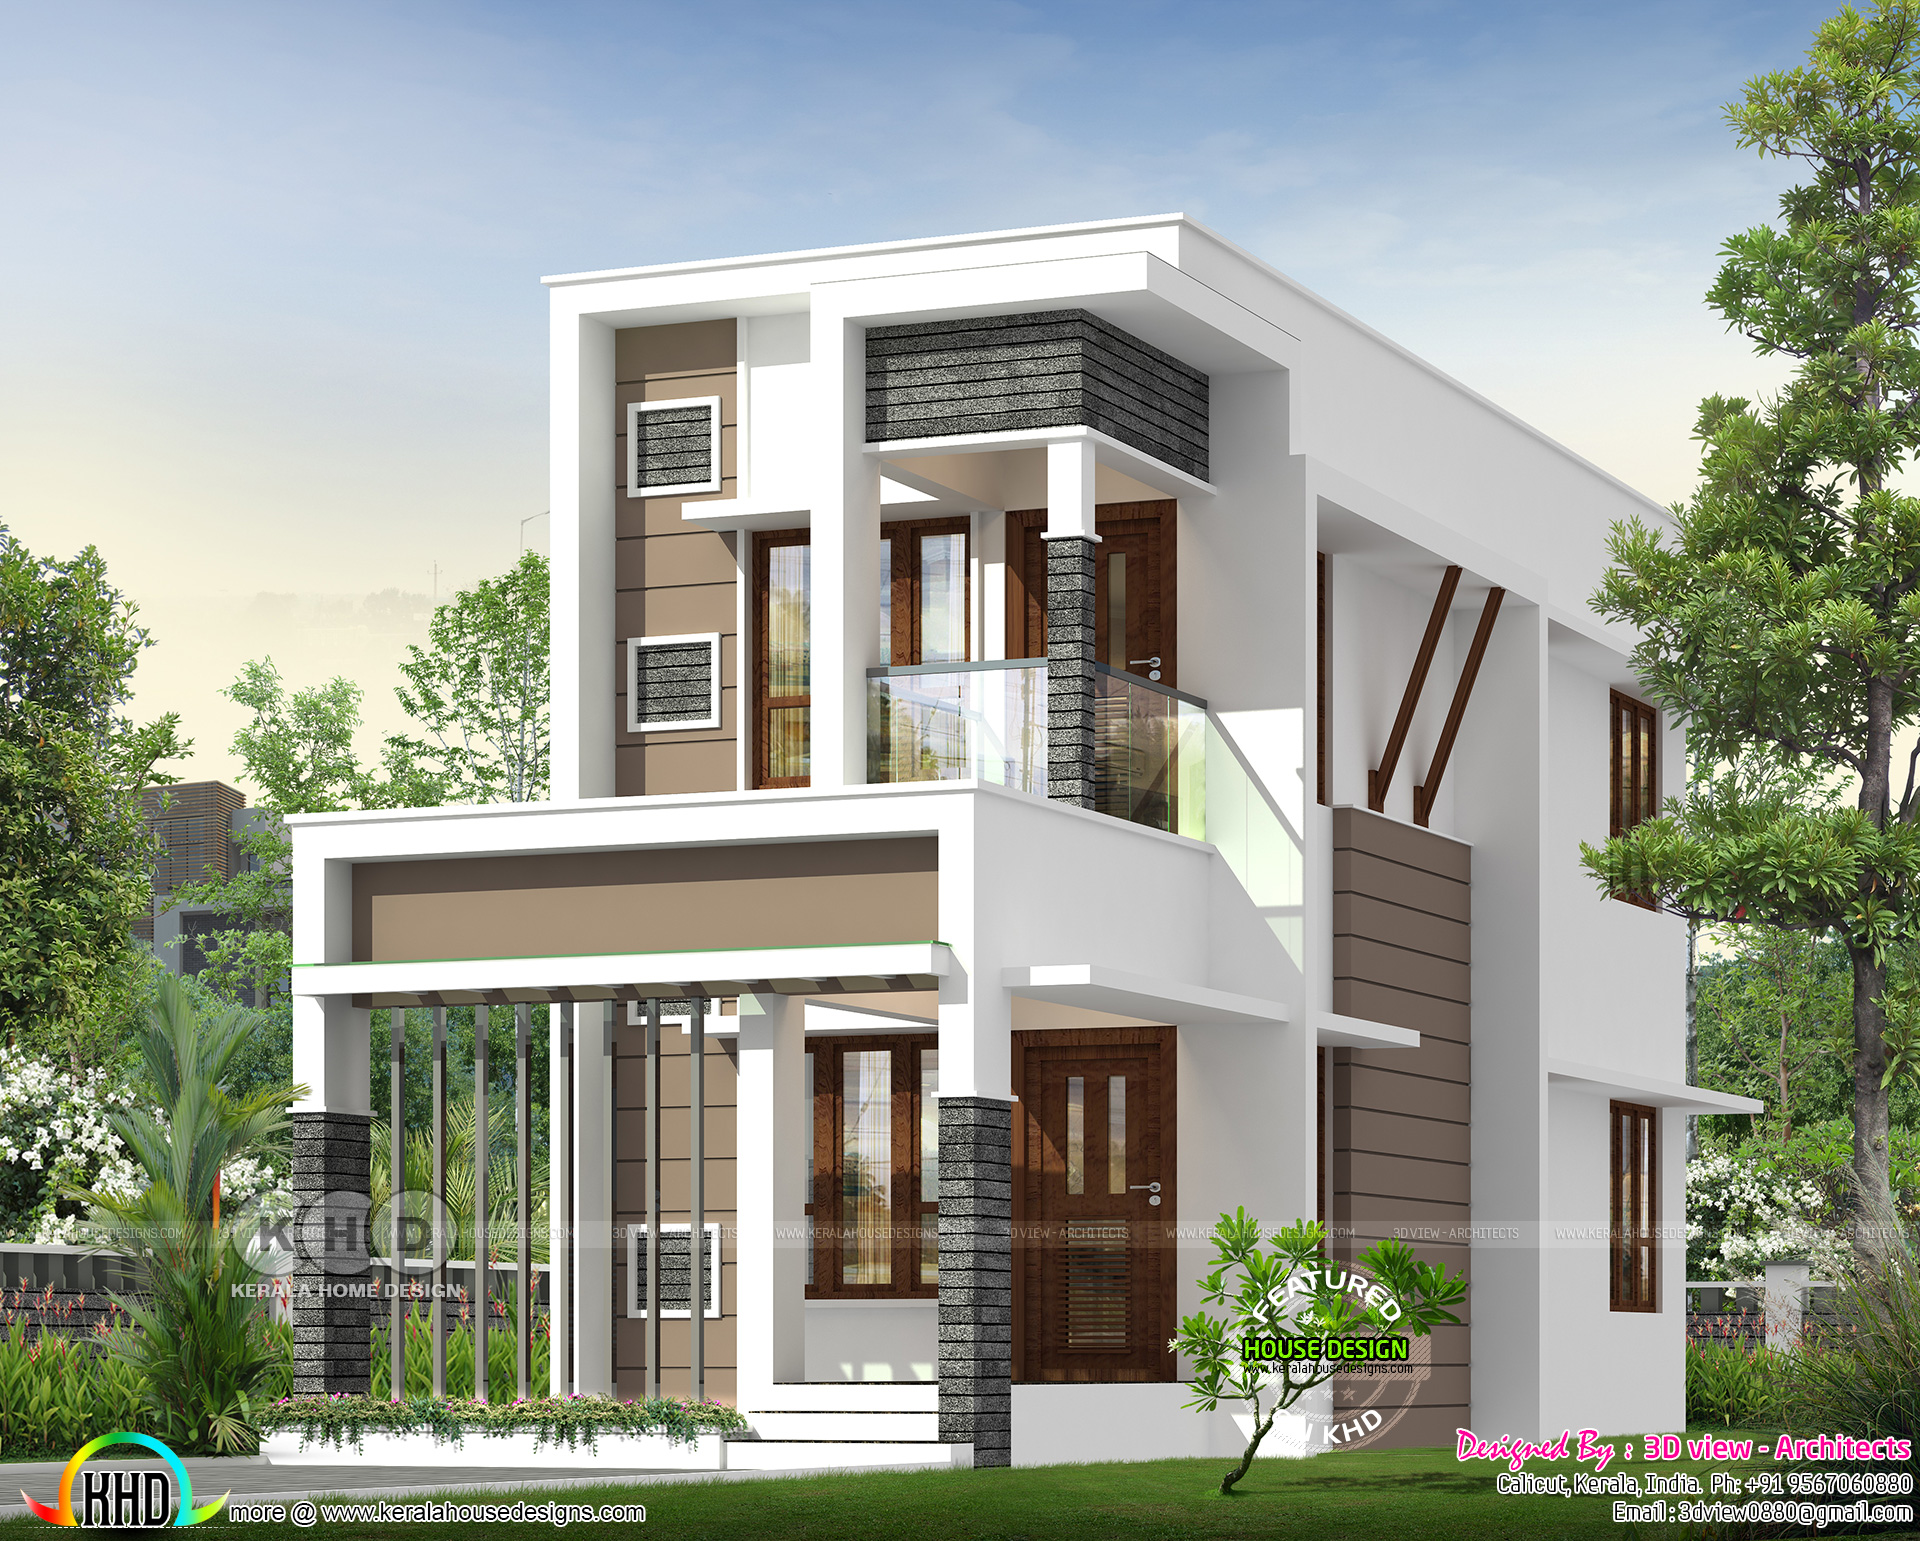 Small double storied house with 4 bedrooms | Kerala home ... on beach view house plans, birds eye view house plans, revit house plans, top house plans, small brick house plans, elevation house plans, home house plans, rear view house plans, best small house plans, autocad house plans, small country ranch house plans, small stone house plans, garden view house plans, plan house plans, one story brick ranch house plans, back view house plans, side view house plans, panoramic view house plans, front house plans, aerial view house plans,